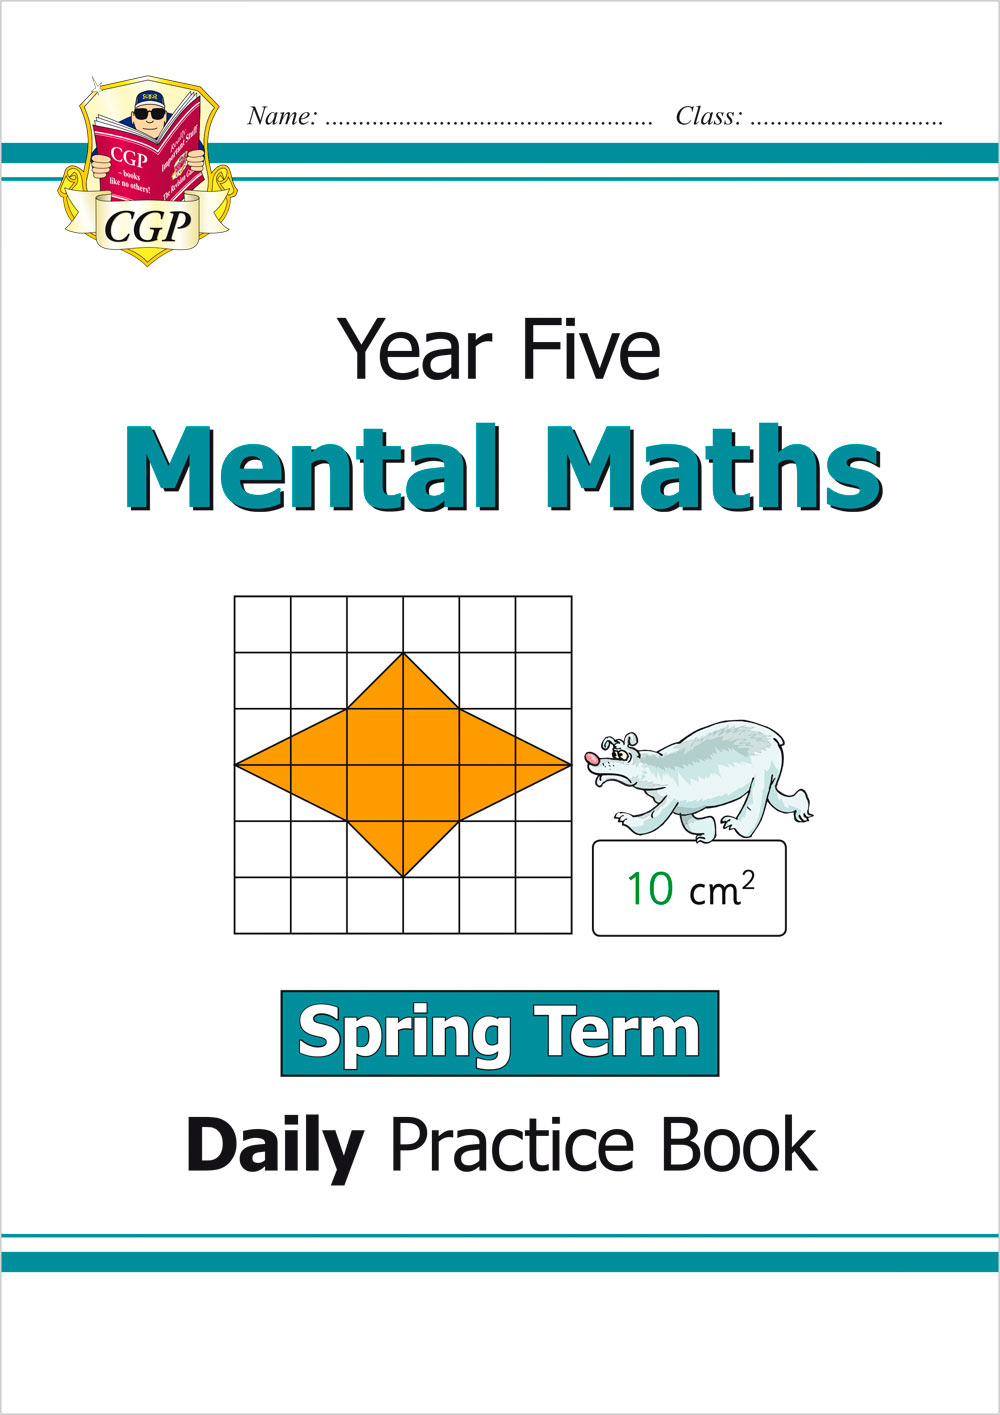 M5MWSP21 - New Mental Maths Daily Practice Book: Year 5 - Spring Term